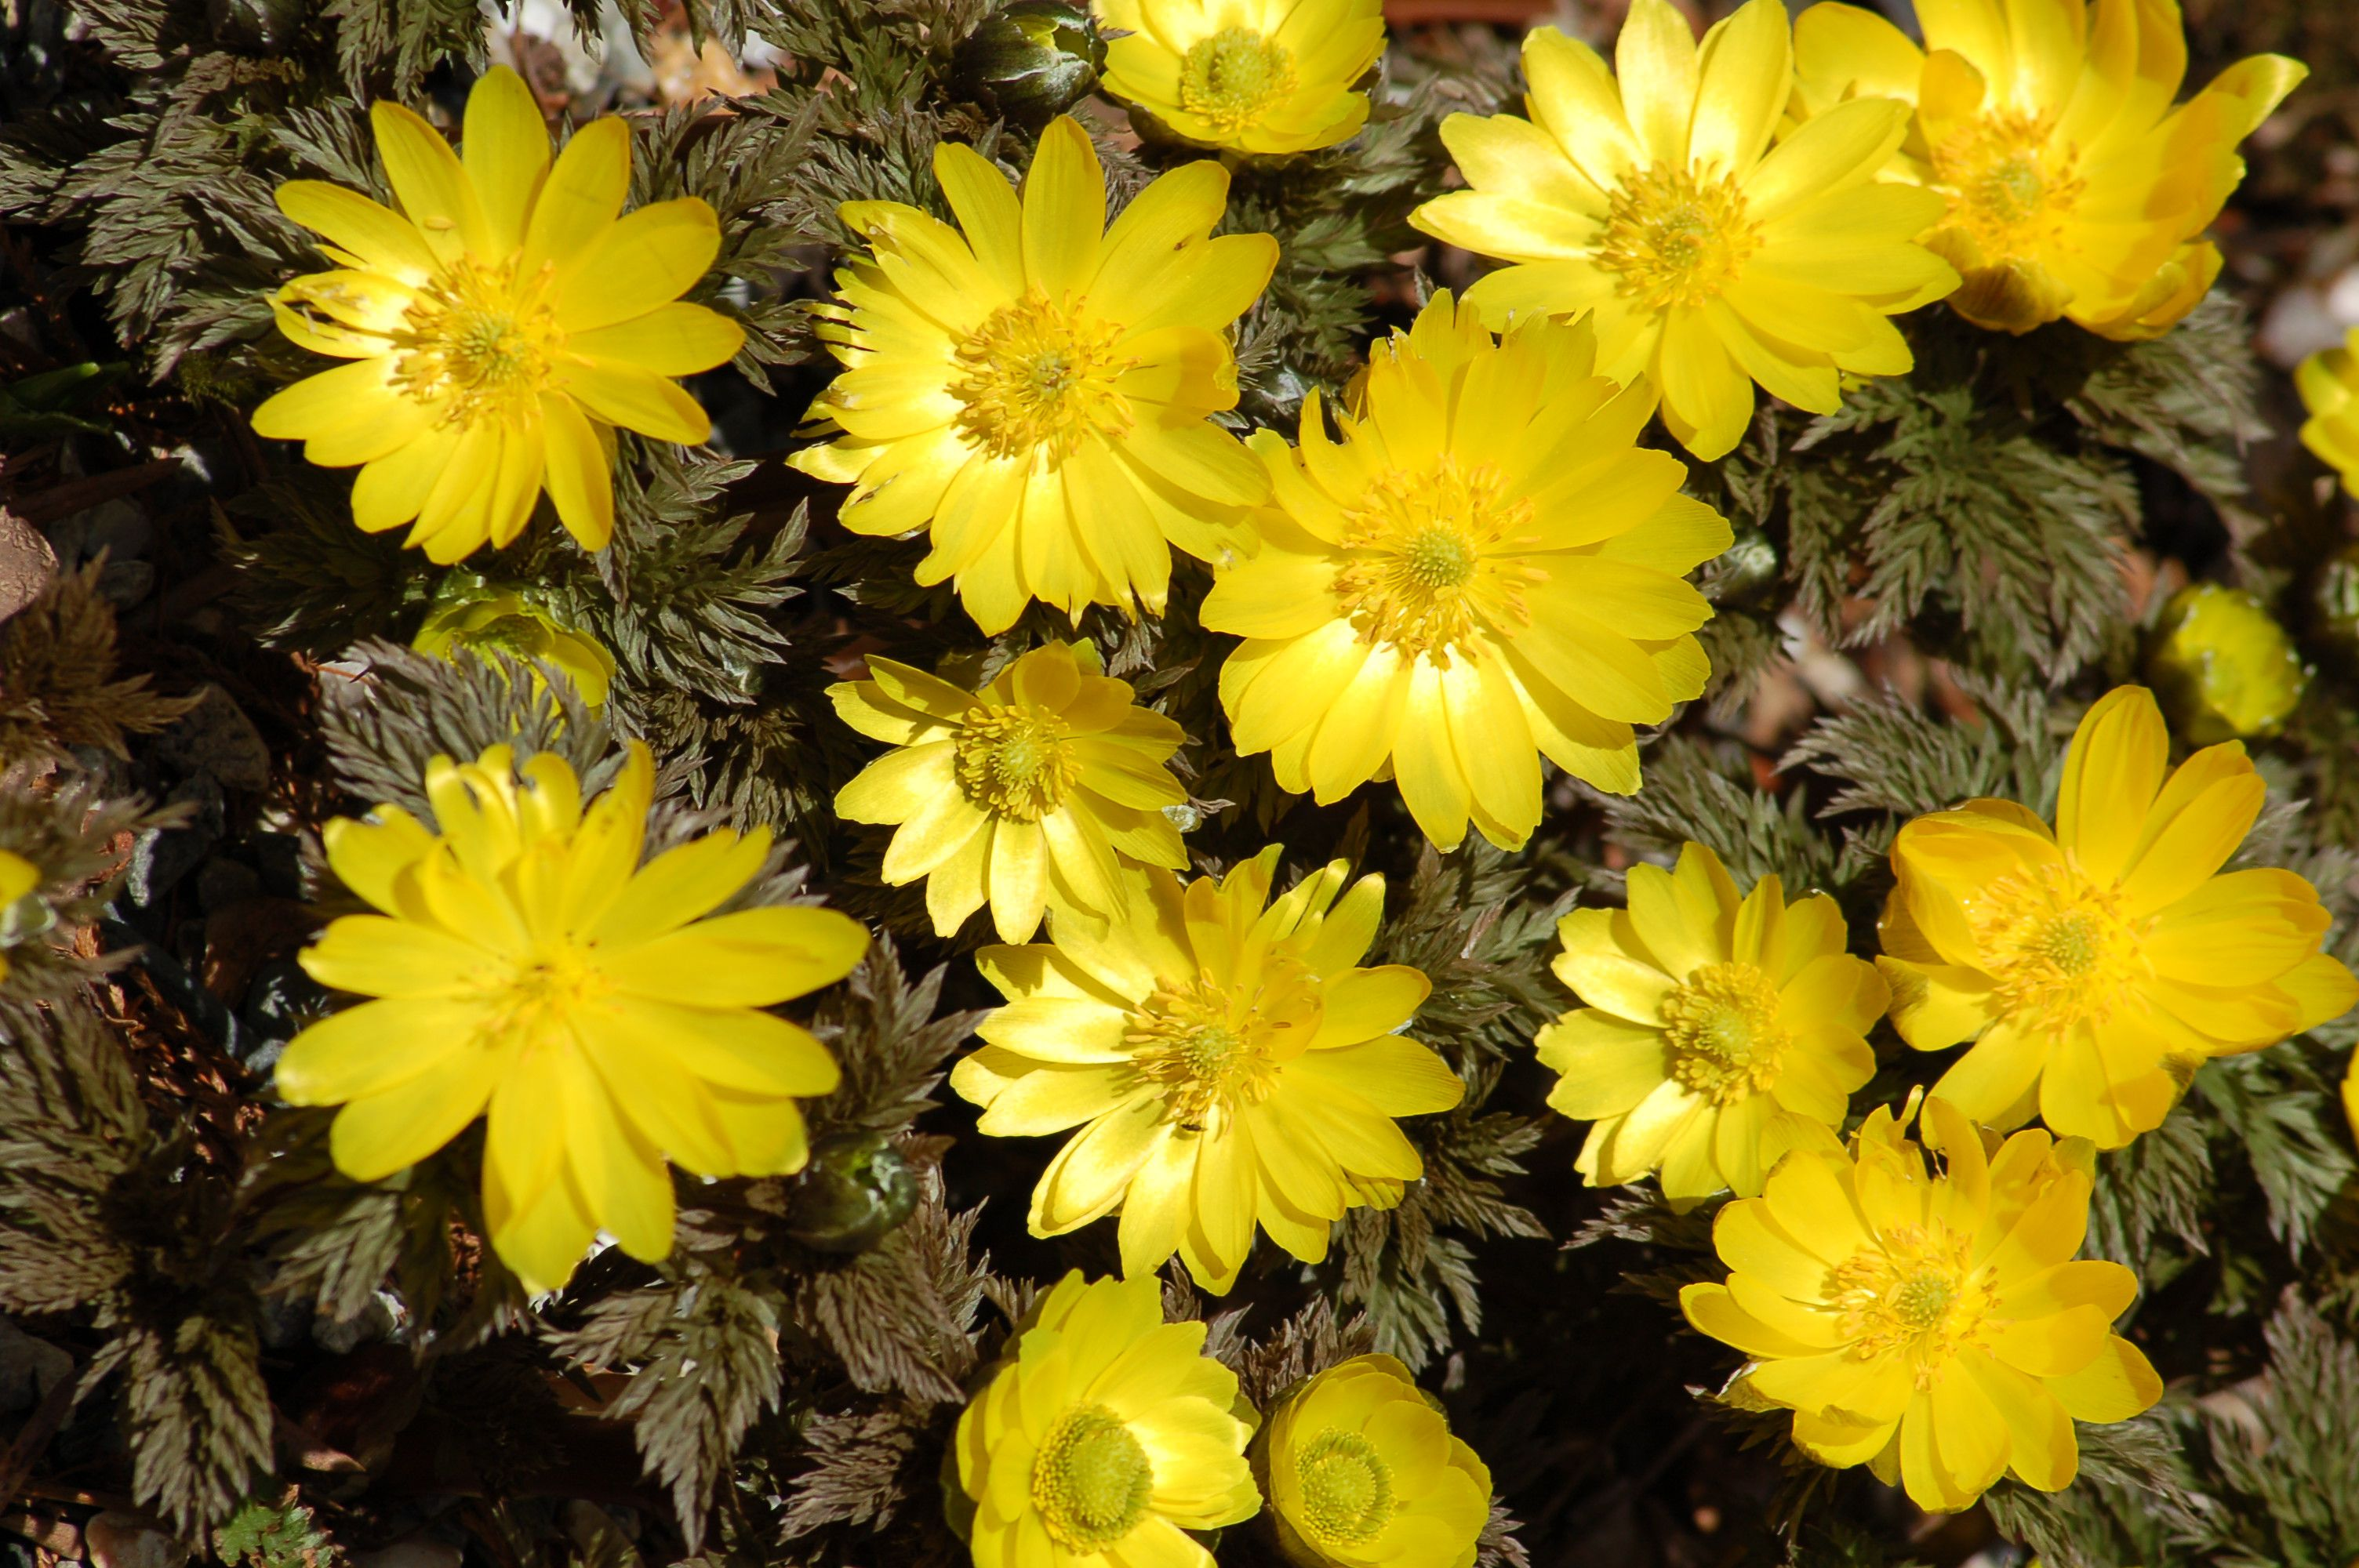 Adonis flowers are yellow in color.